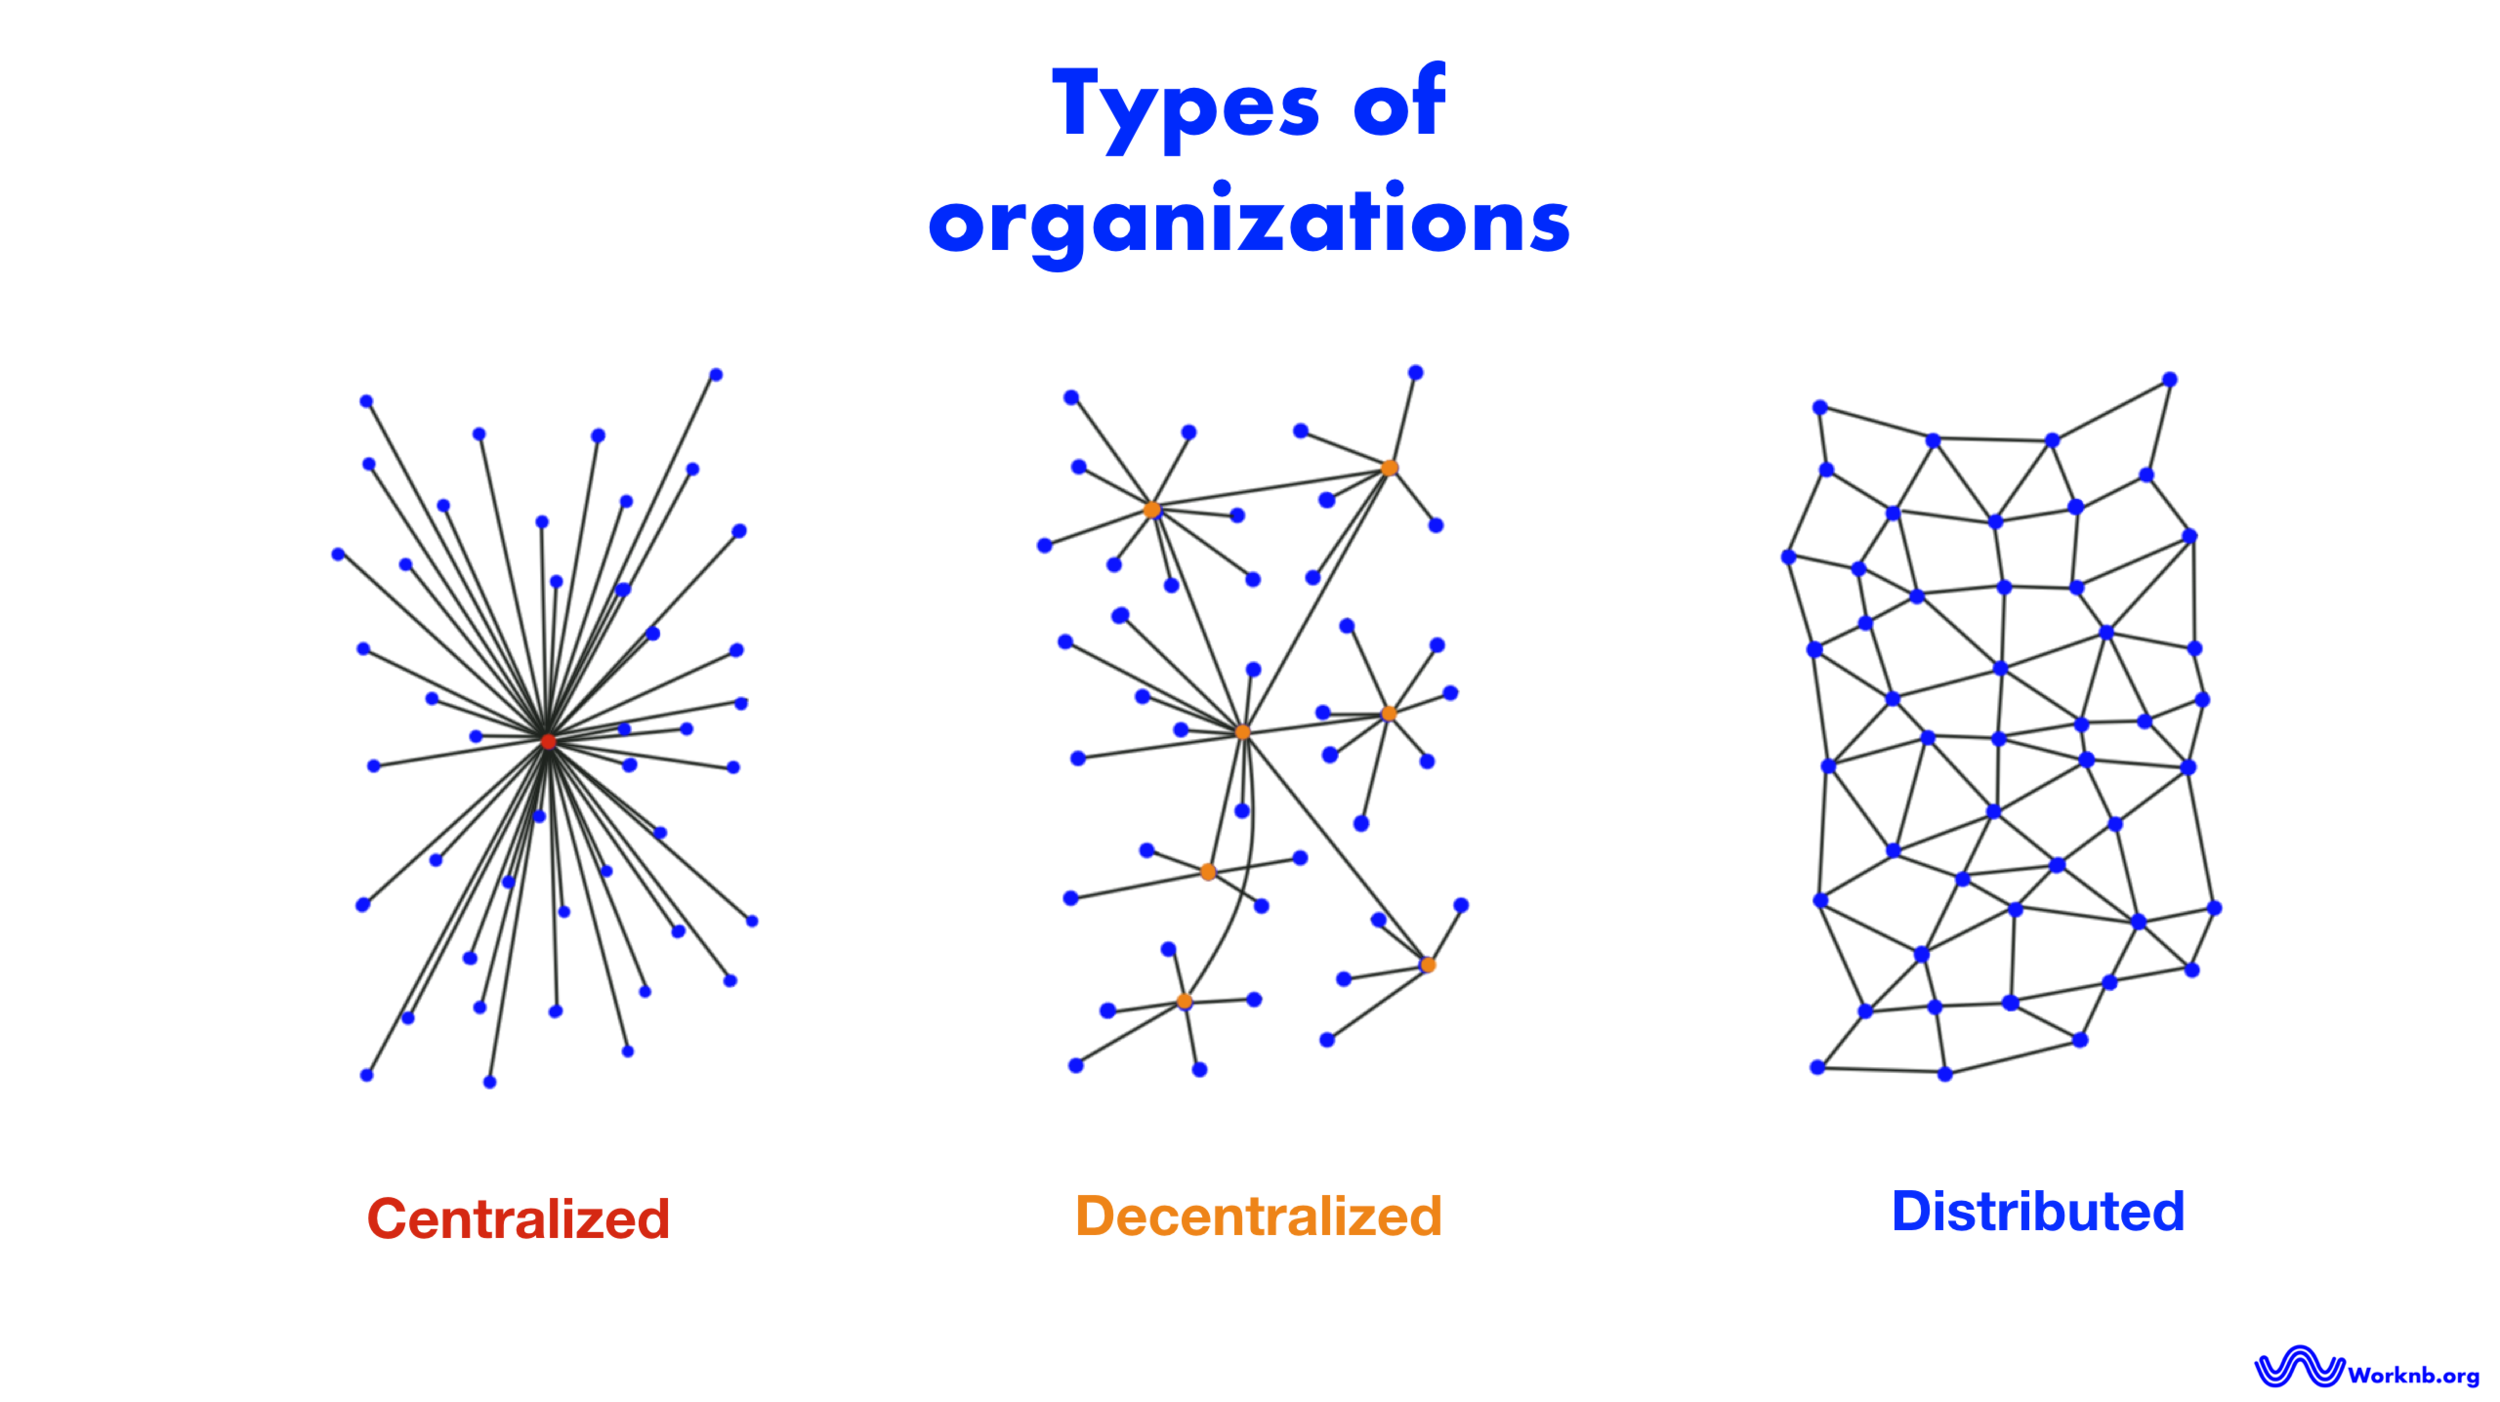 Types of netoworks and organizations - centralized, decentralized and distributed | Worknb.org